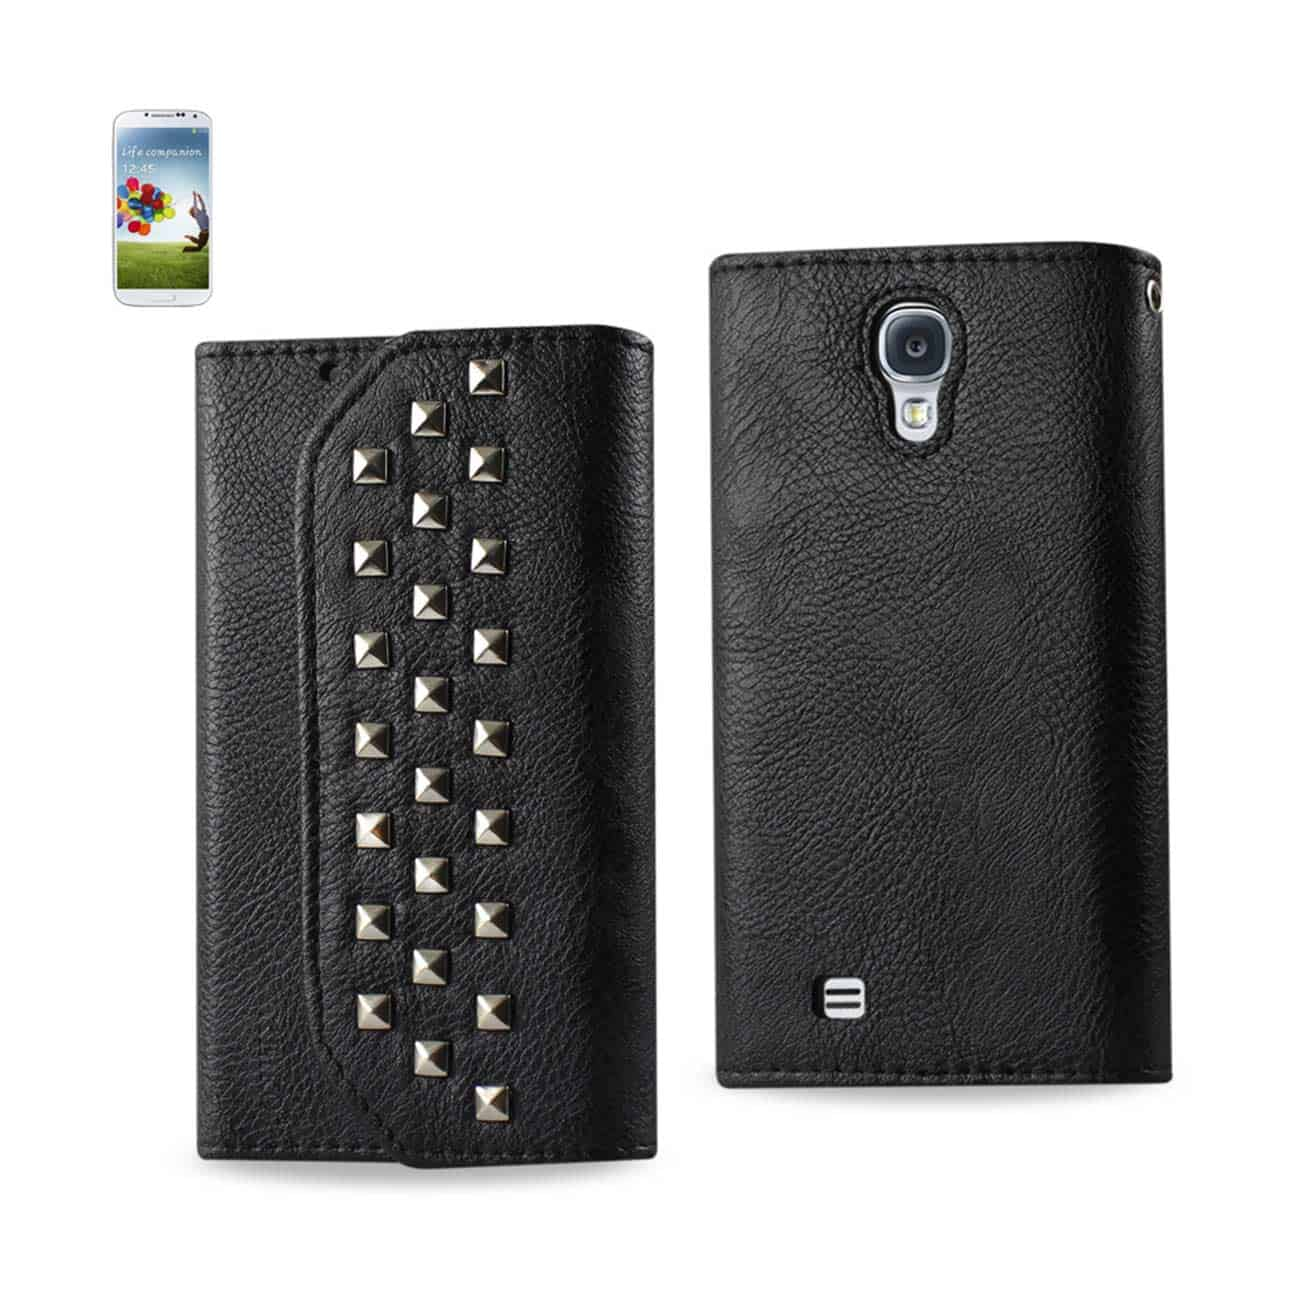 SAMSUNG GALAXY S4 STUDS WALLET CASE IN BLACK